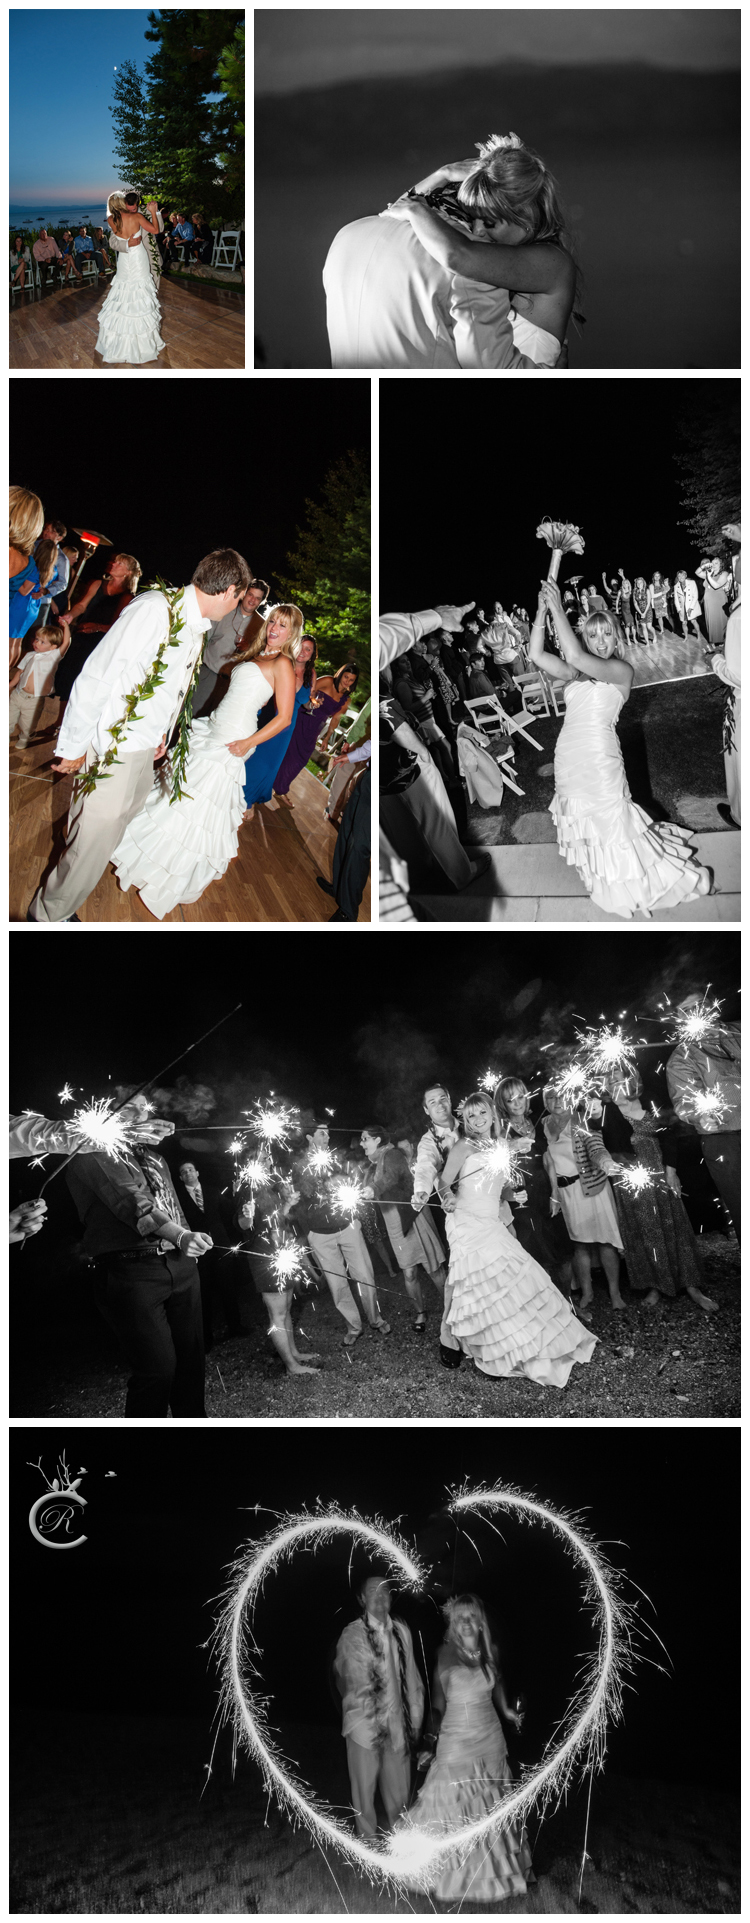 Fun sparklers at the wedding